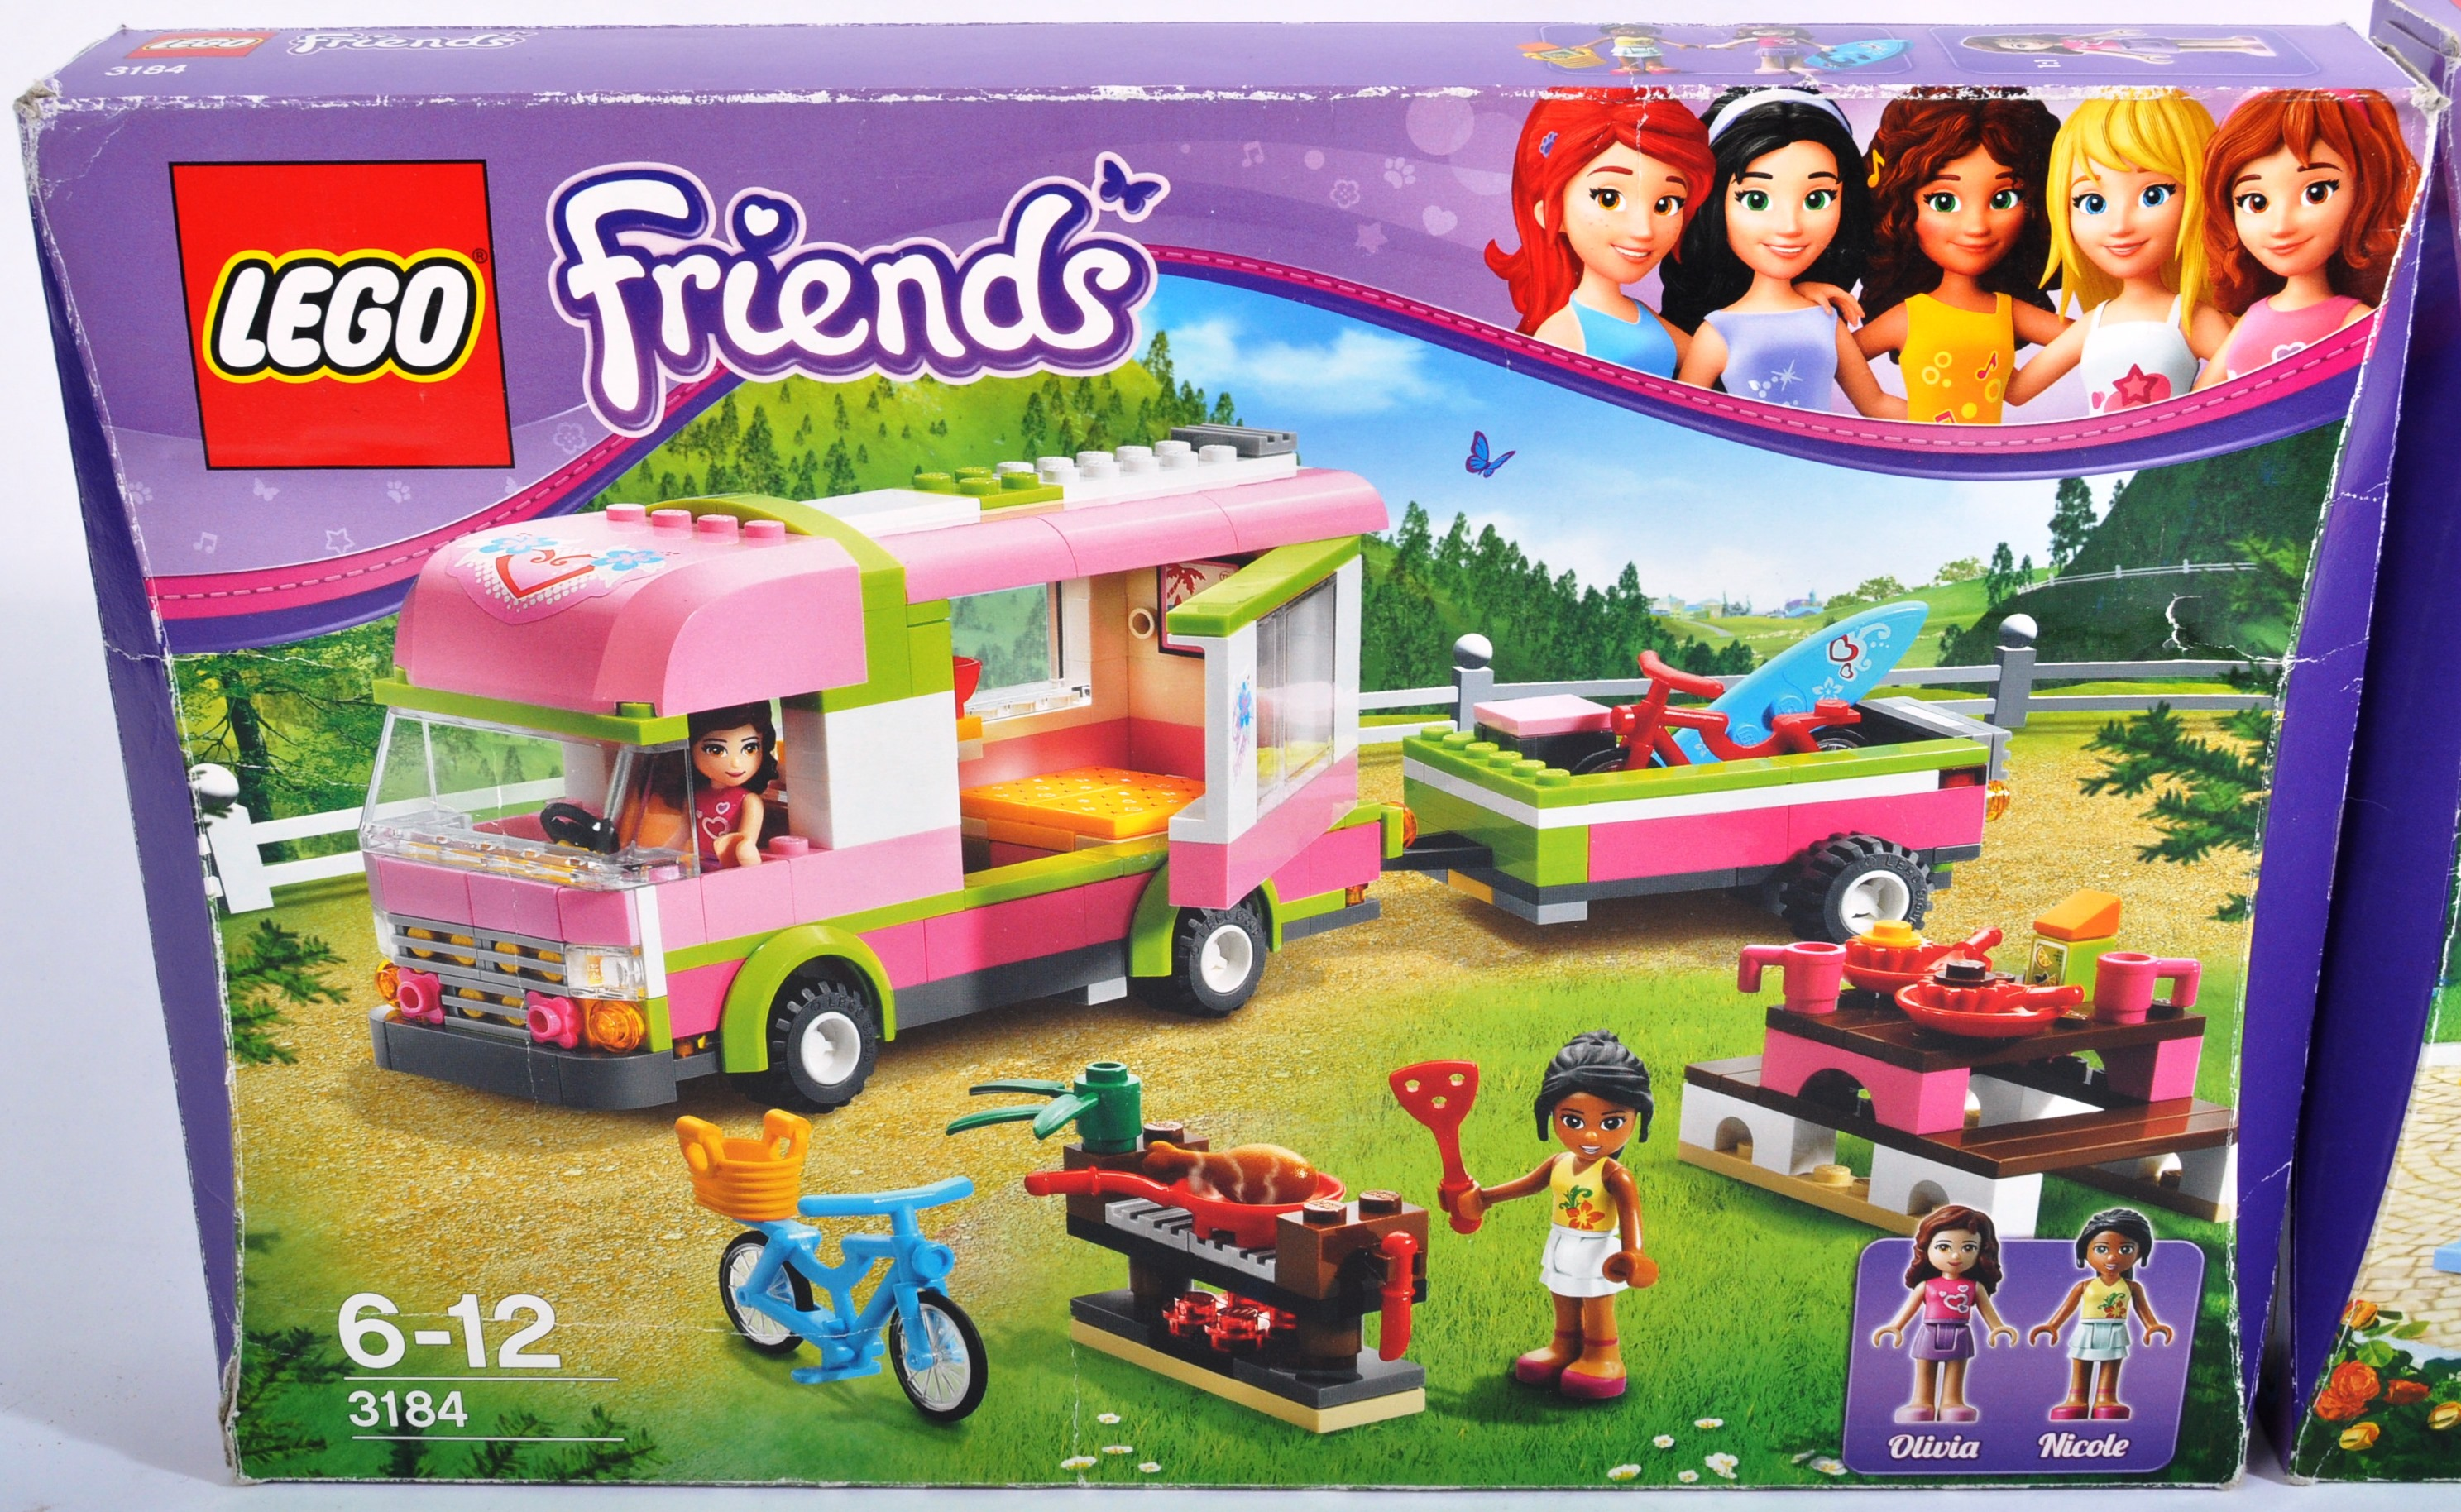 LEGO SETS - LEGO FRIENDS - COLLECTION OF X5 LEGO FRIENDS SETS - Image 5 of 6